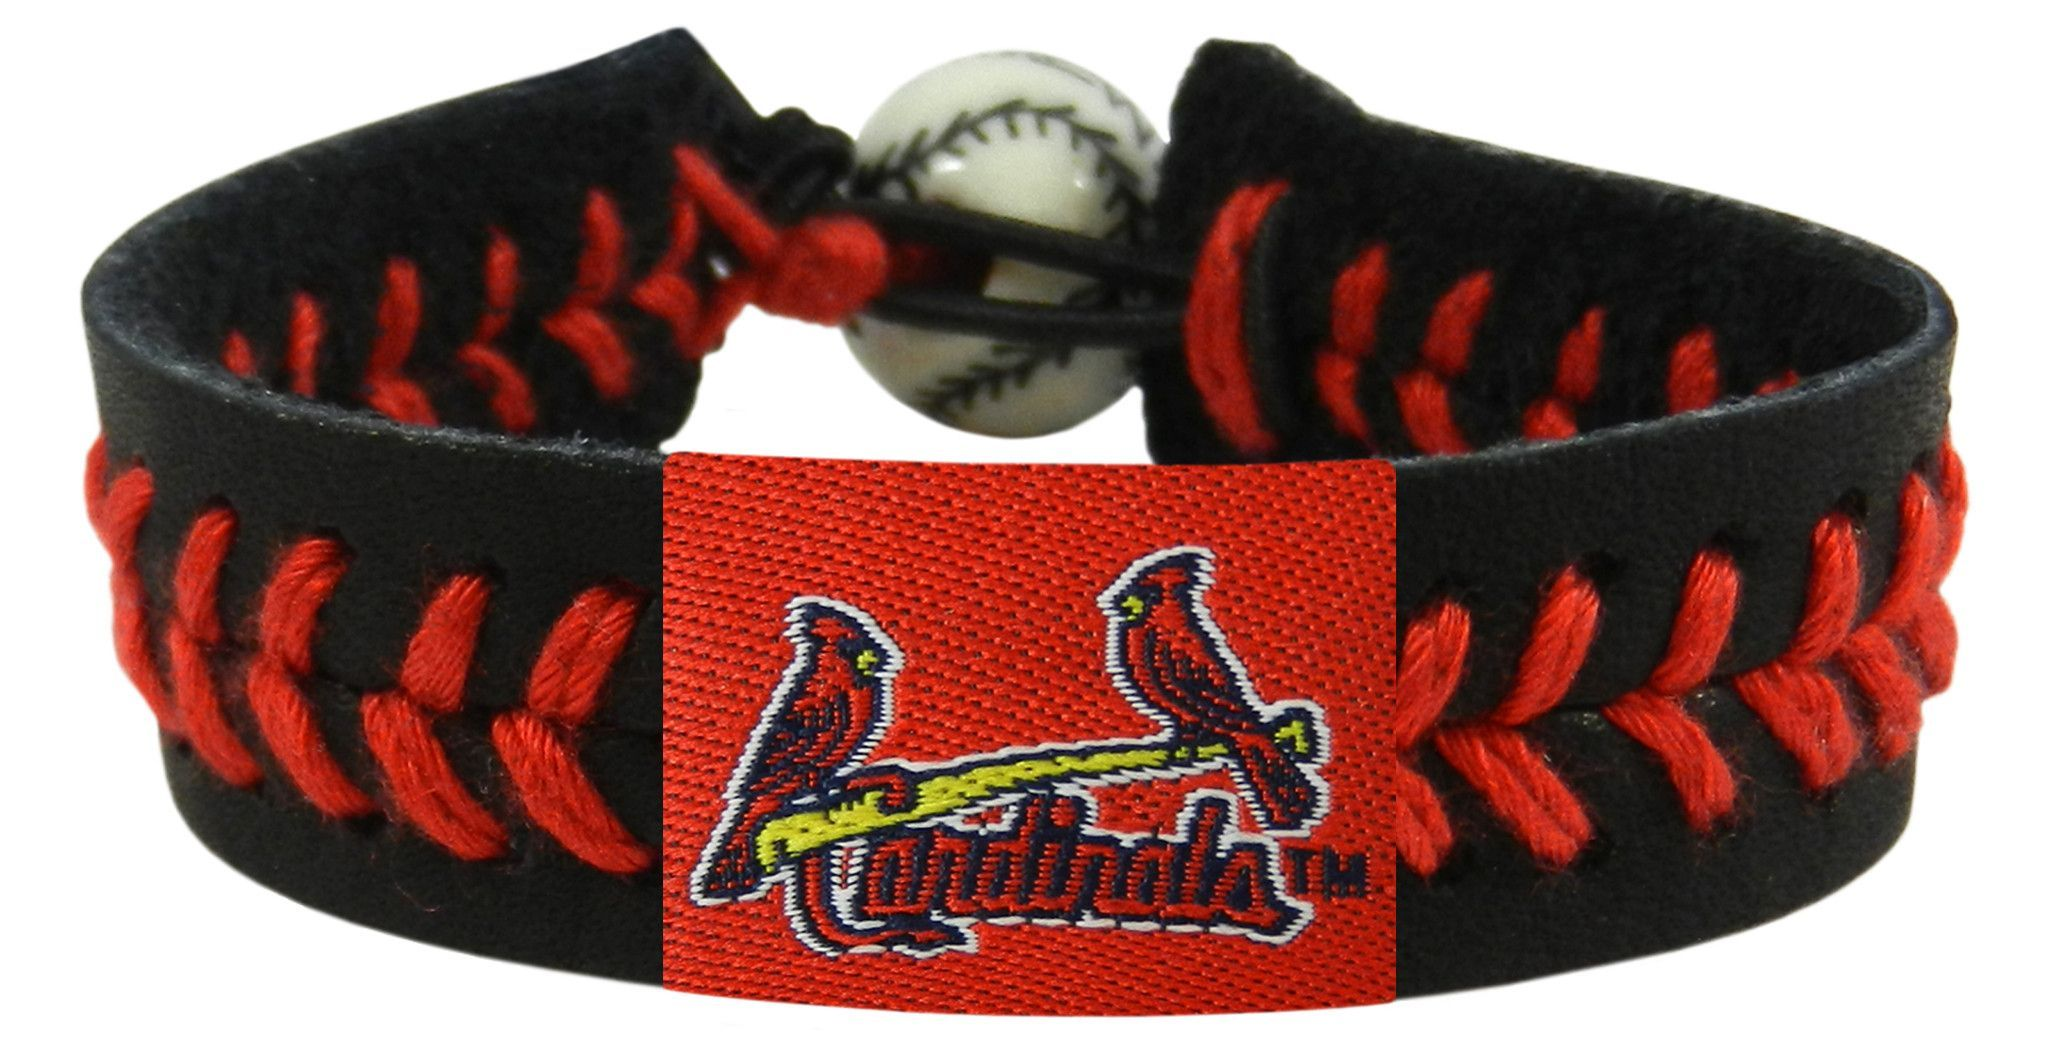 St Louis Cardinals Baseball Bracelet Black Band Red Stiches Birds Bat Logo